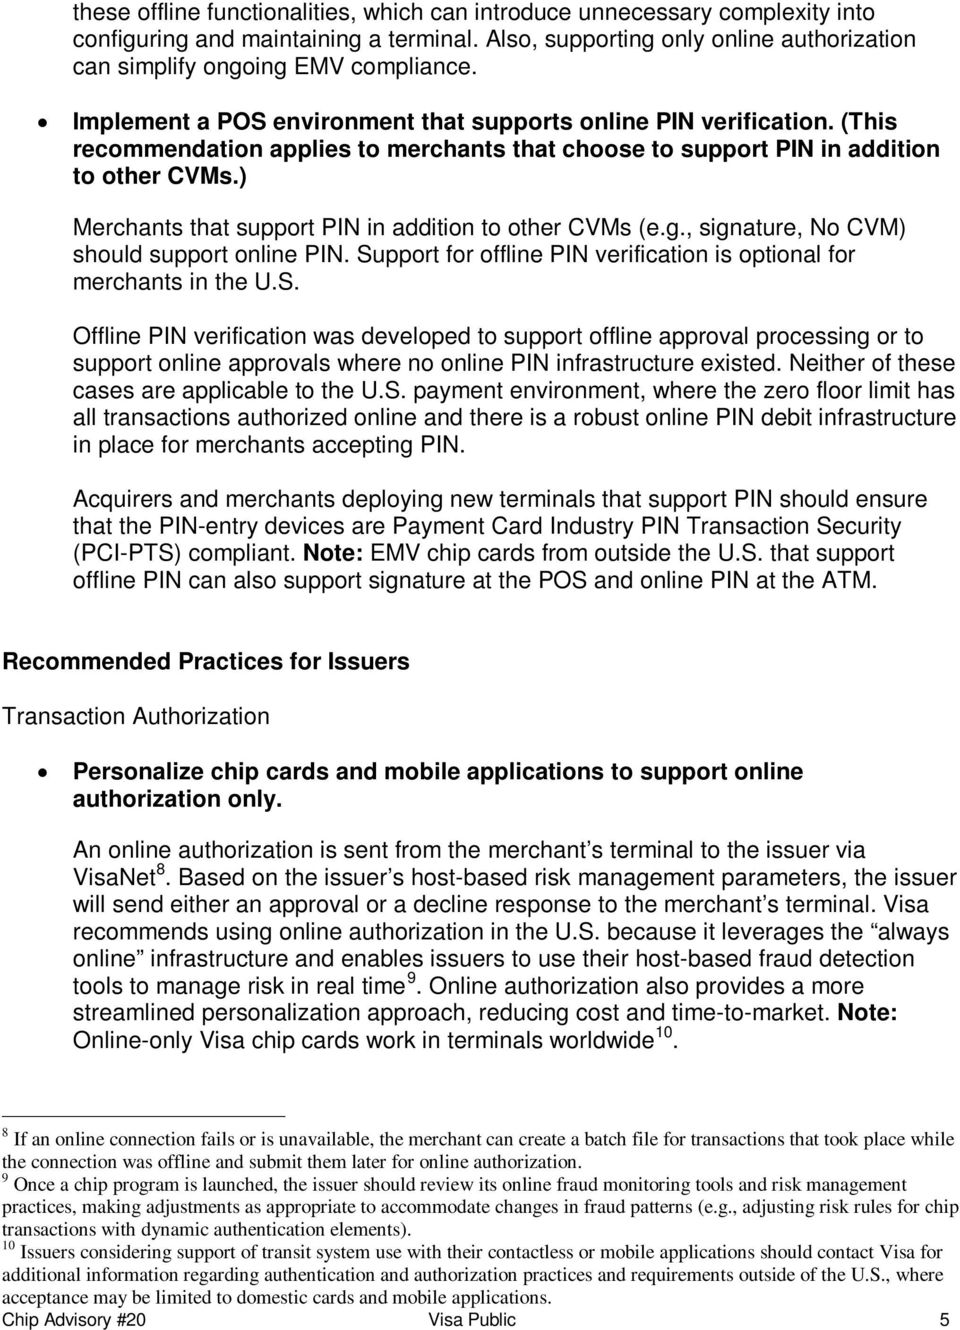 ) Merchants that support PIN in addition to other CVMs (e.g., signature, No CVM) should support online PIN. Su